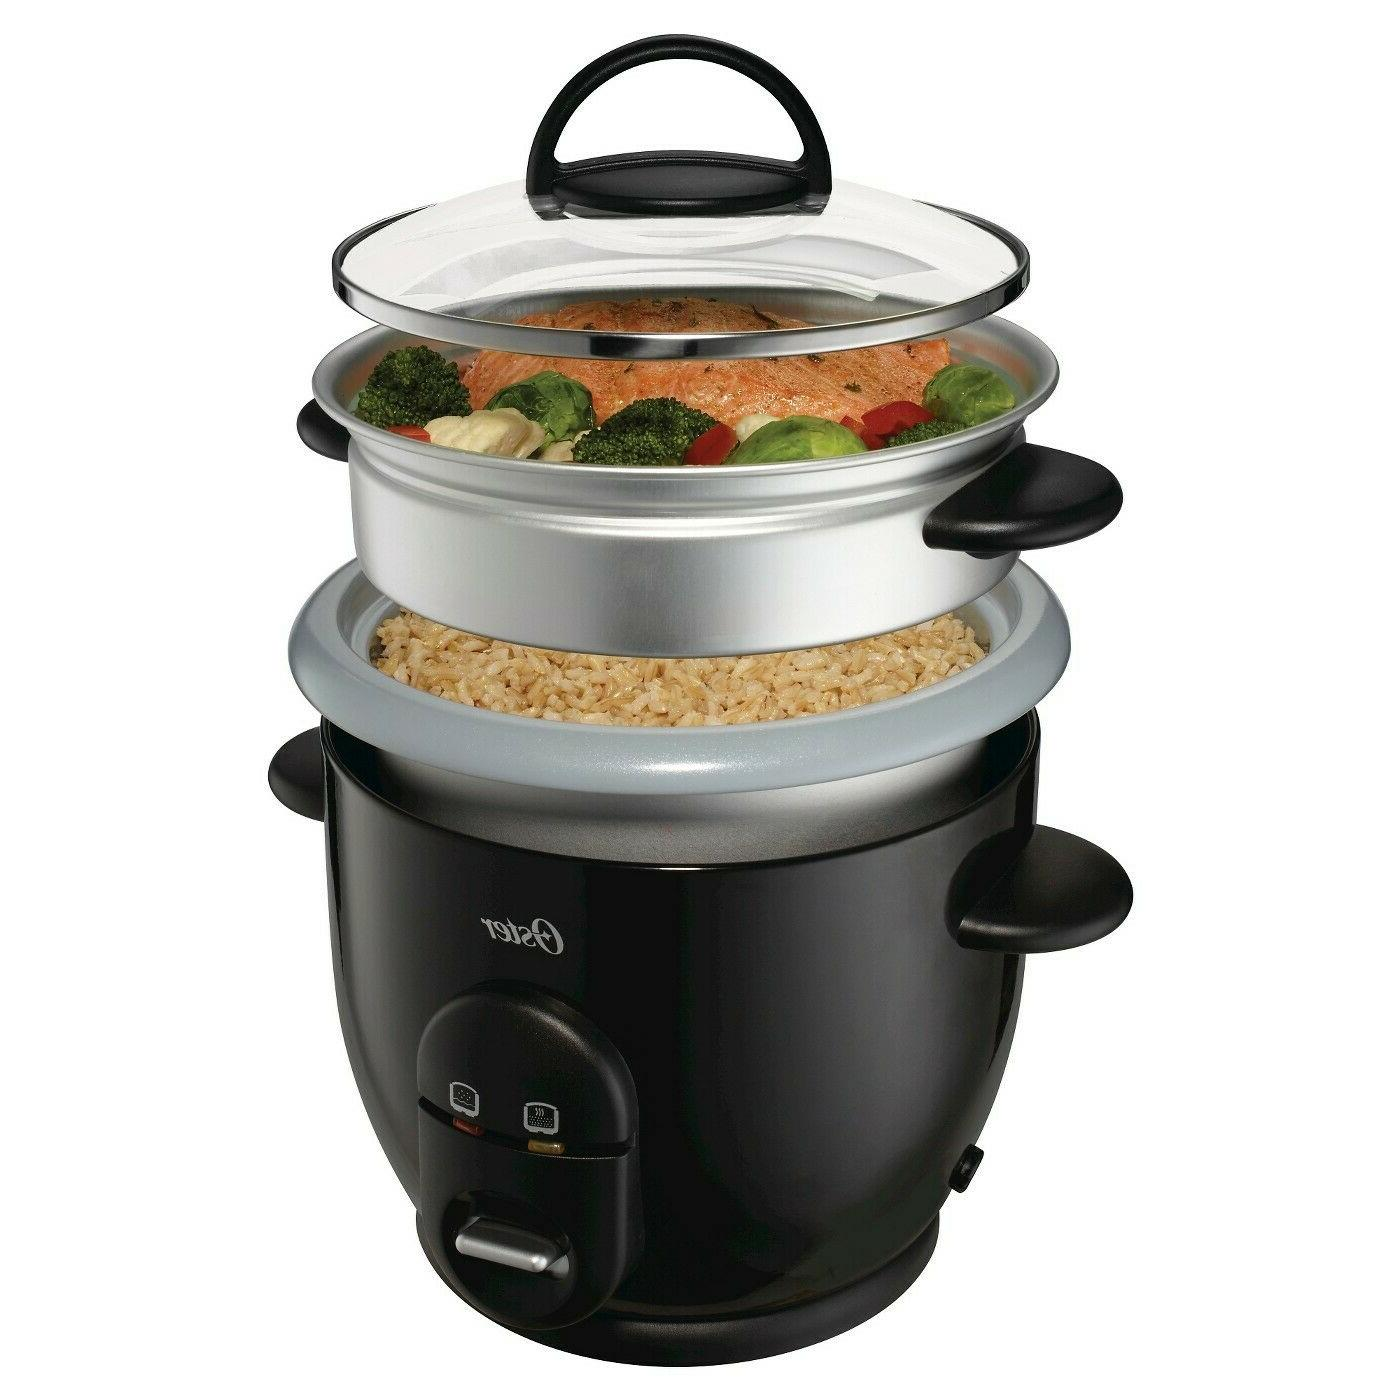 anodized duraceramic 6 cup rice cooker